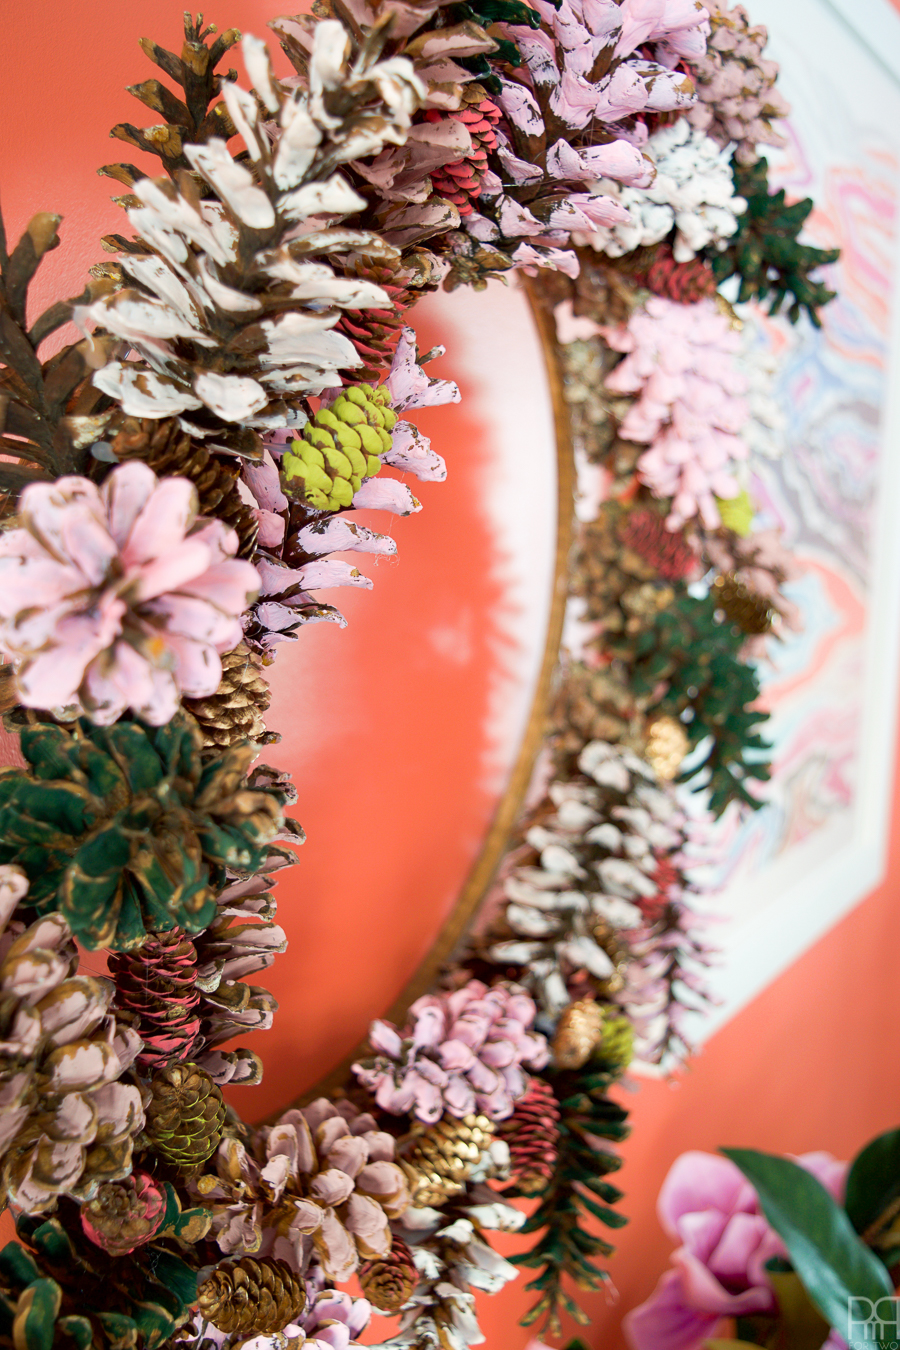 Painted Pinecone Wreath by PMQ for Two